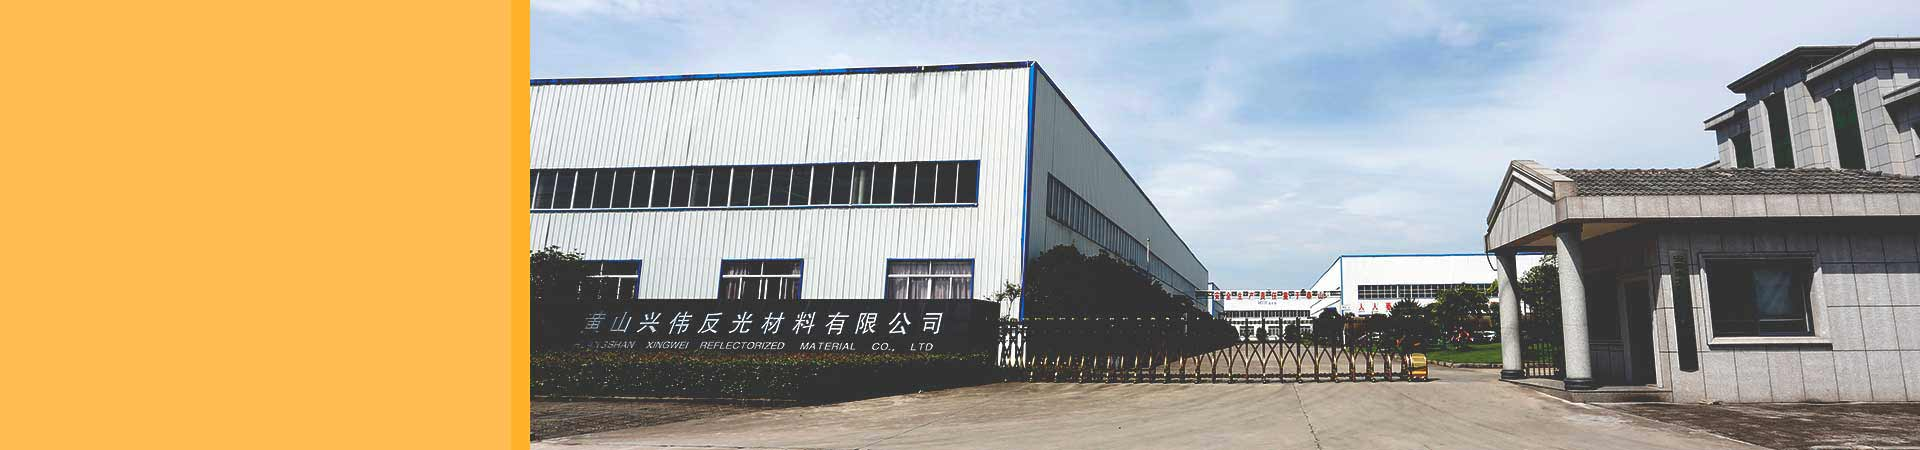 reflective material supplier from China